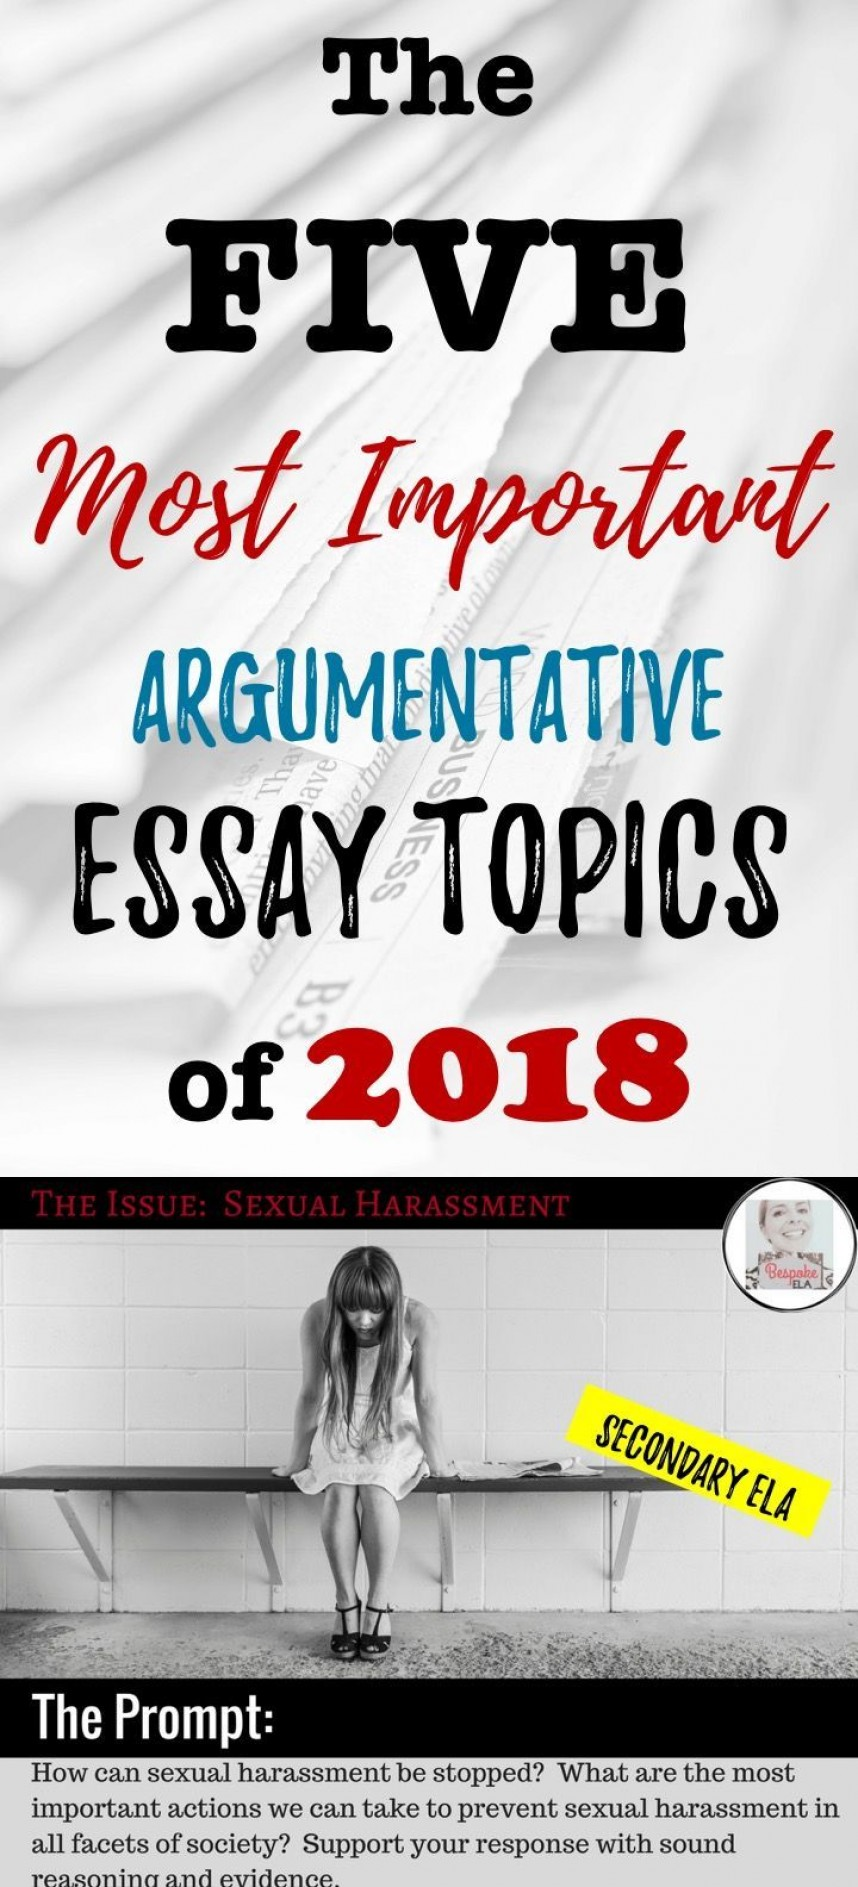 005 Argumentative Topics Research Paper Stupendous 2018 Easy Essay Middle School In The Philippines